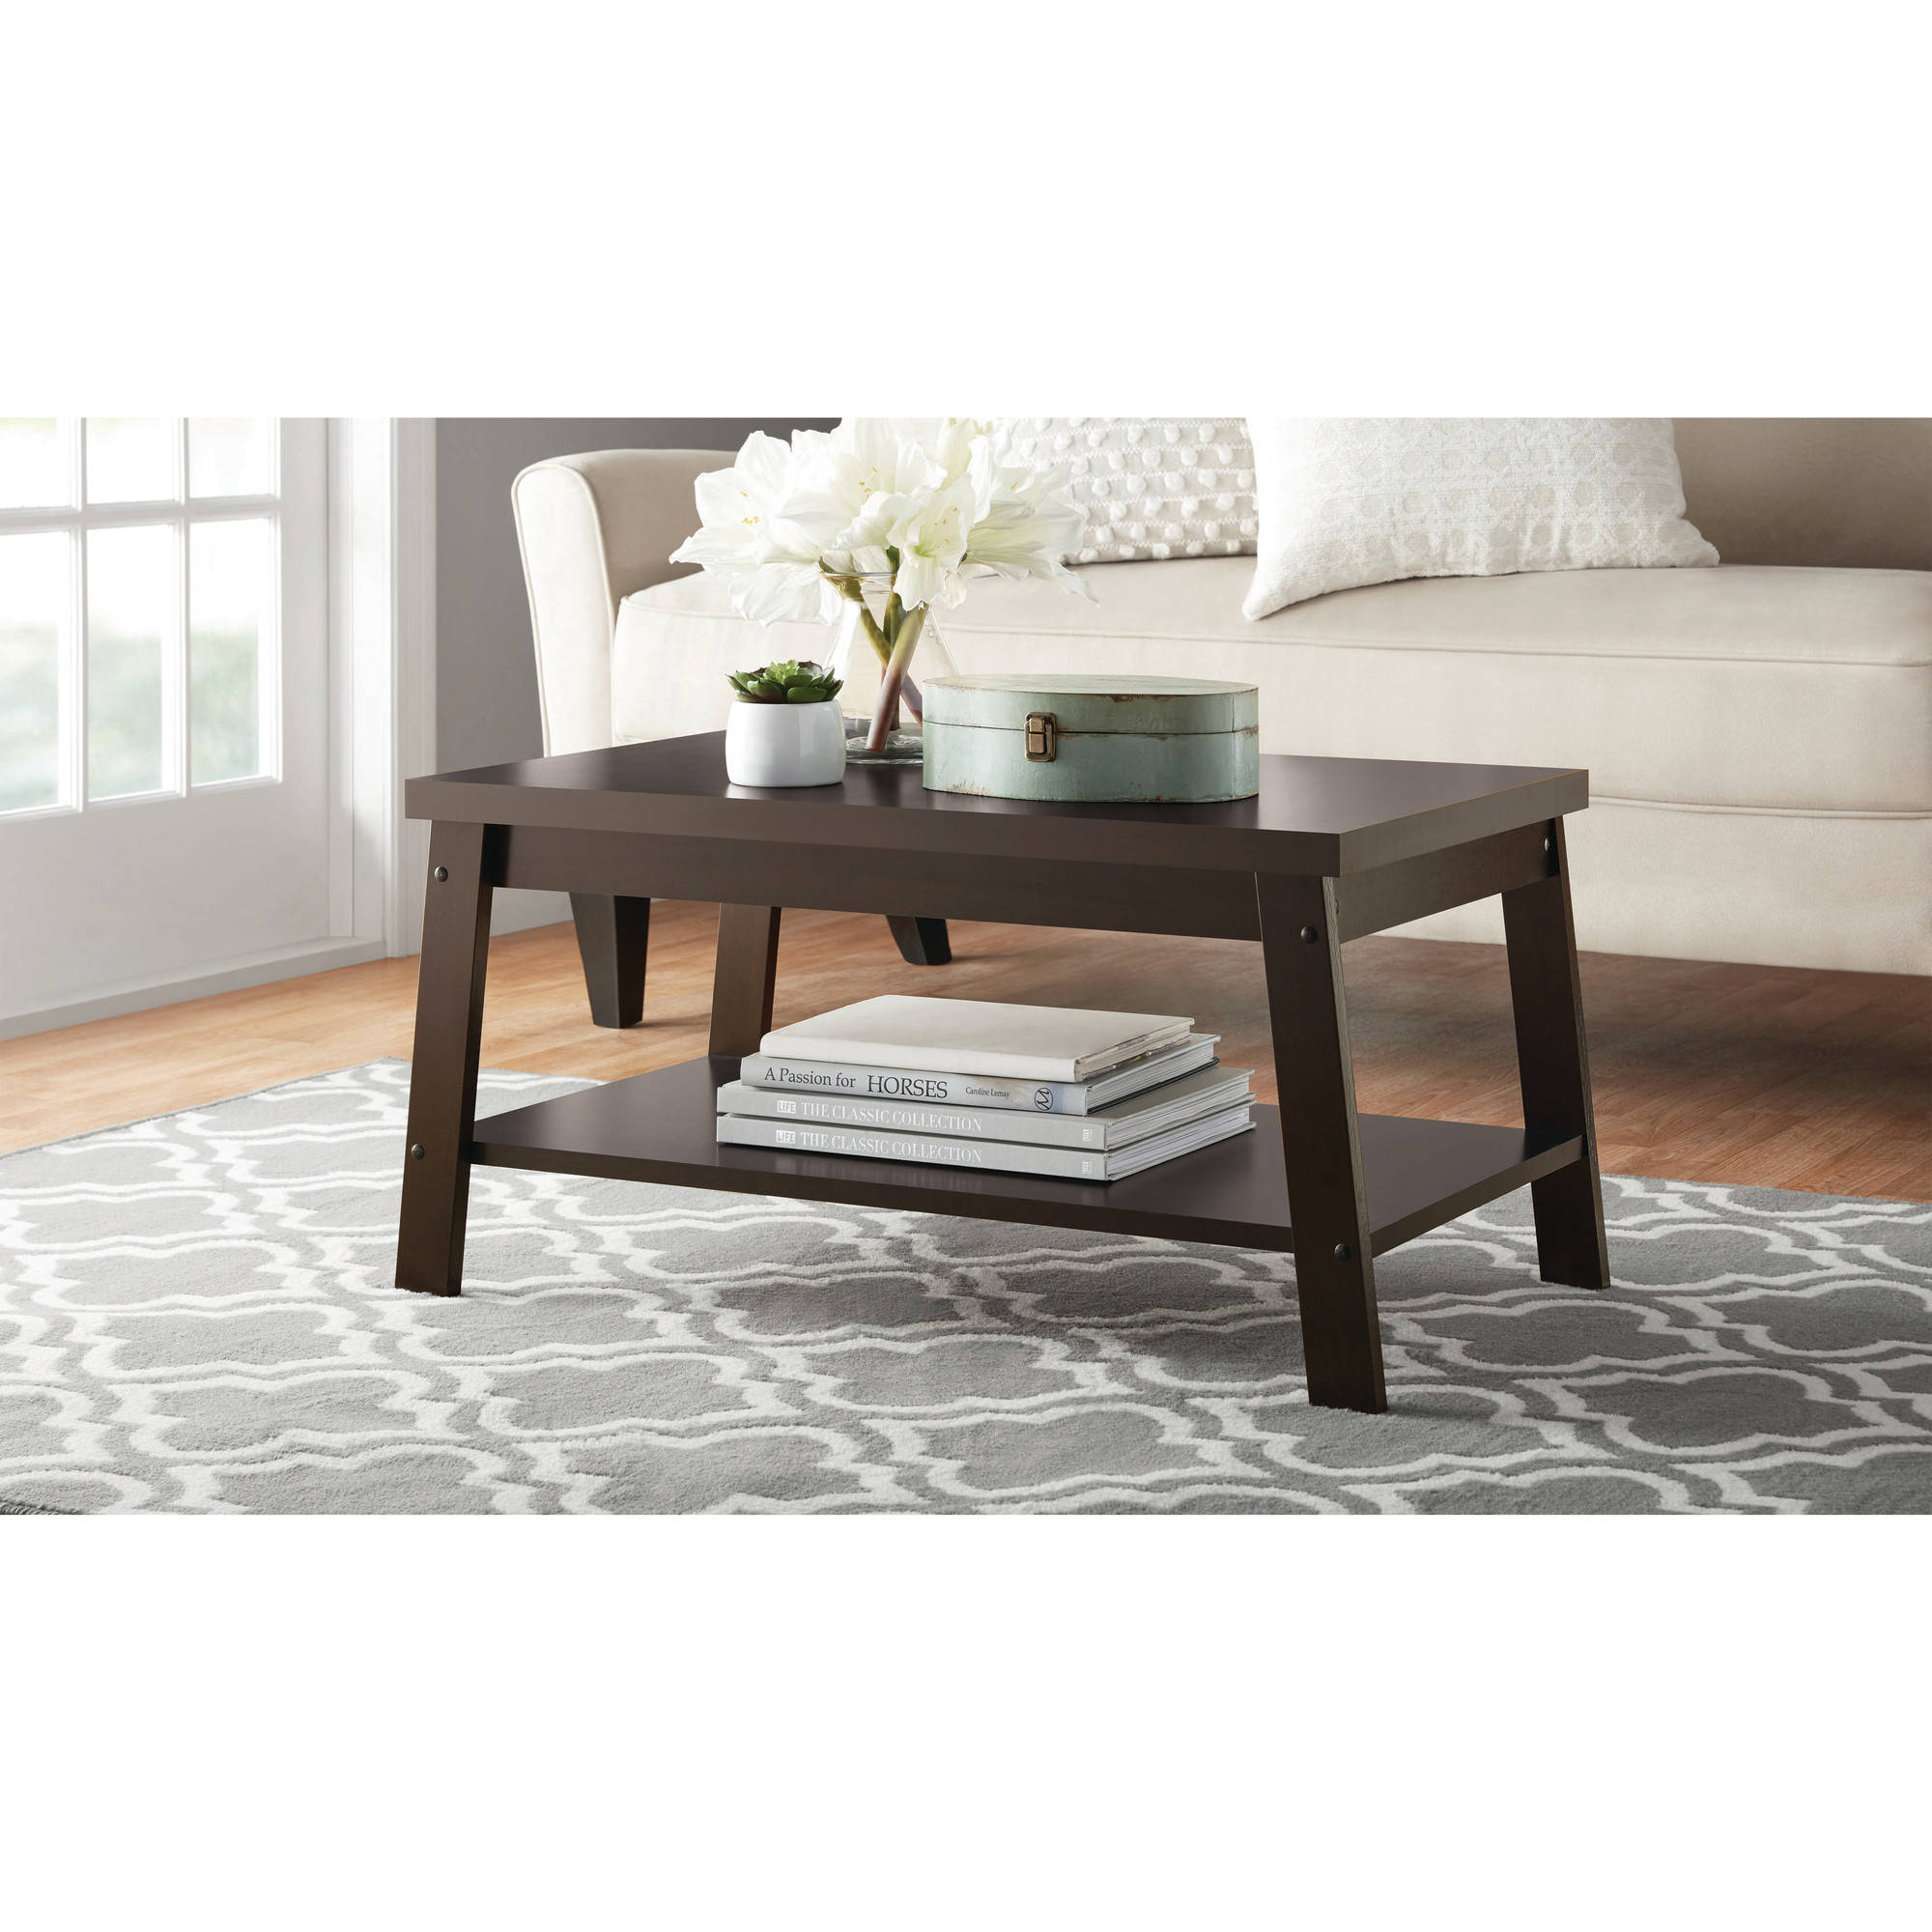 Mainstays Logan Coffee Table Multiple Finishes Walmart